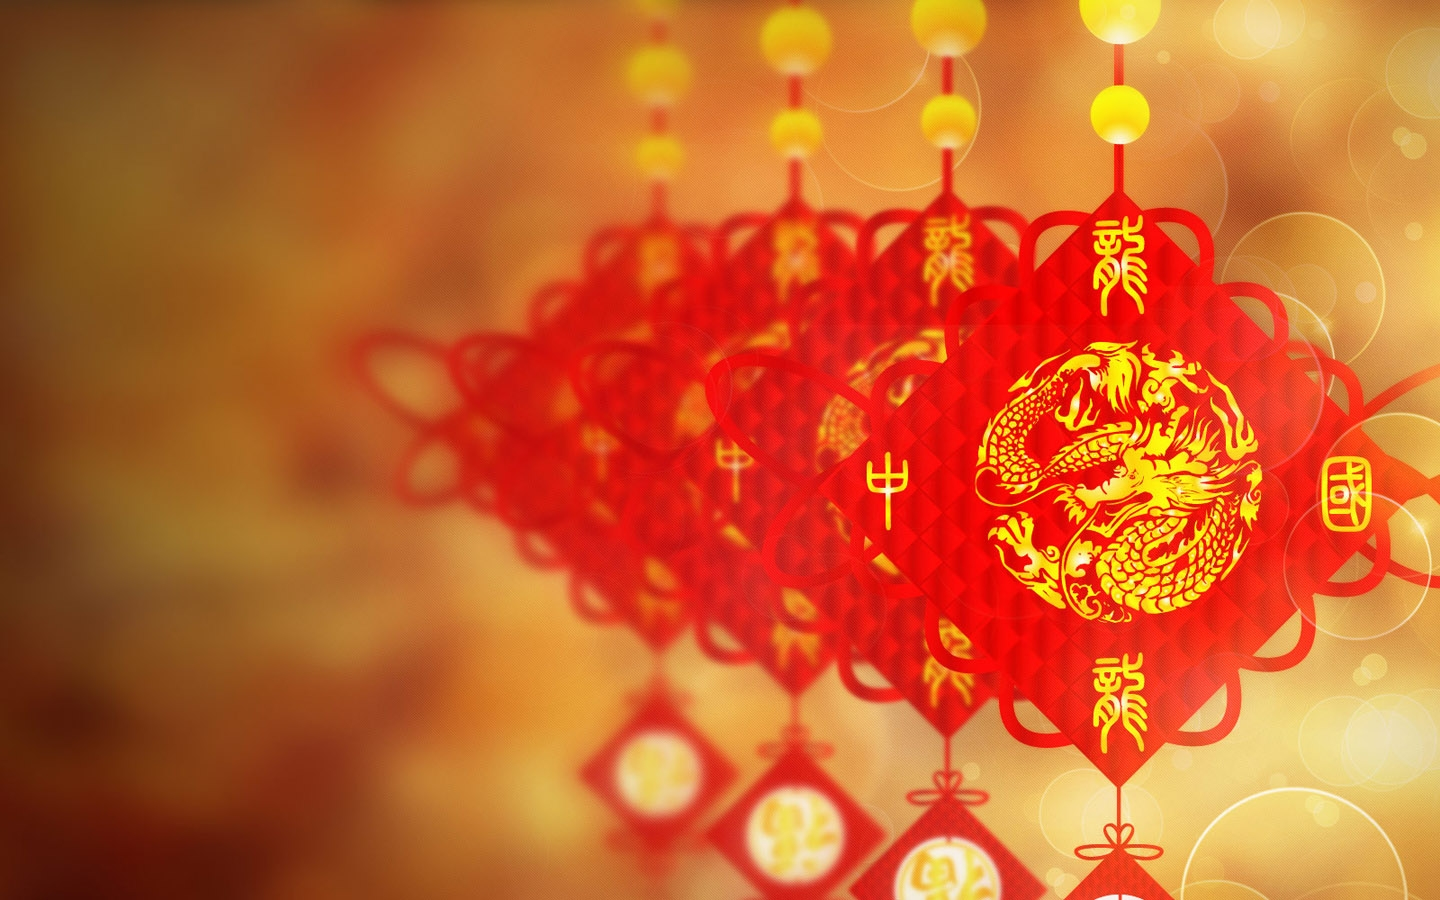 Chinese Style Powerpoint Background Chinese backgr 1440x900